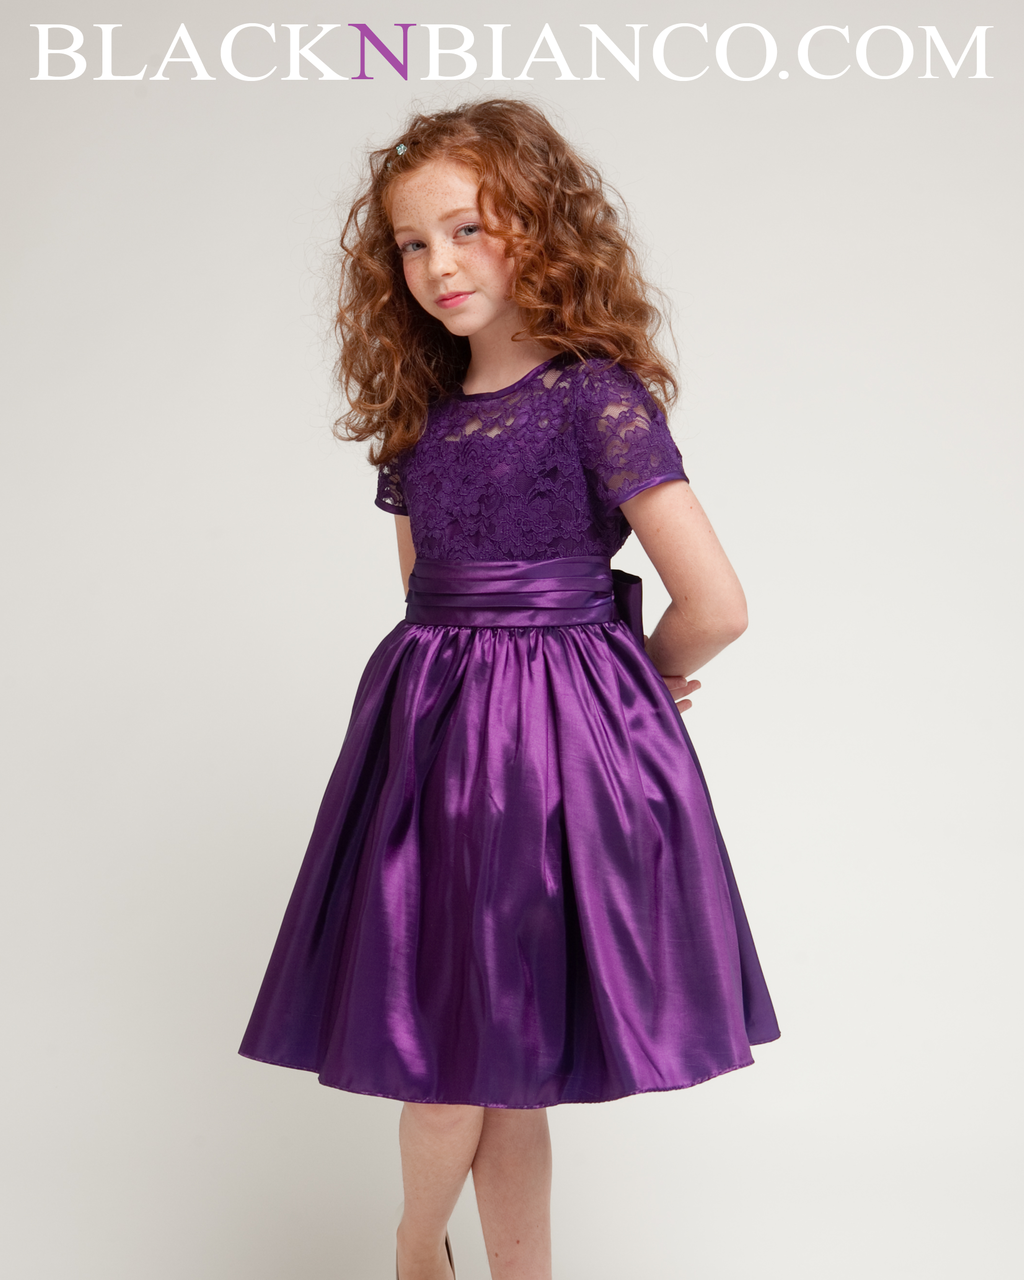 Dresses For Girls: Purple Flower Girl Dress With Satin Lace Sleeves Black N